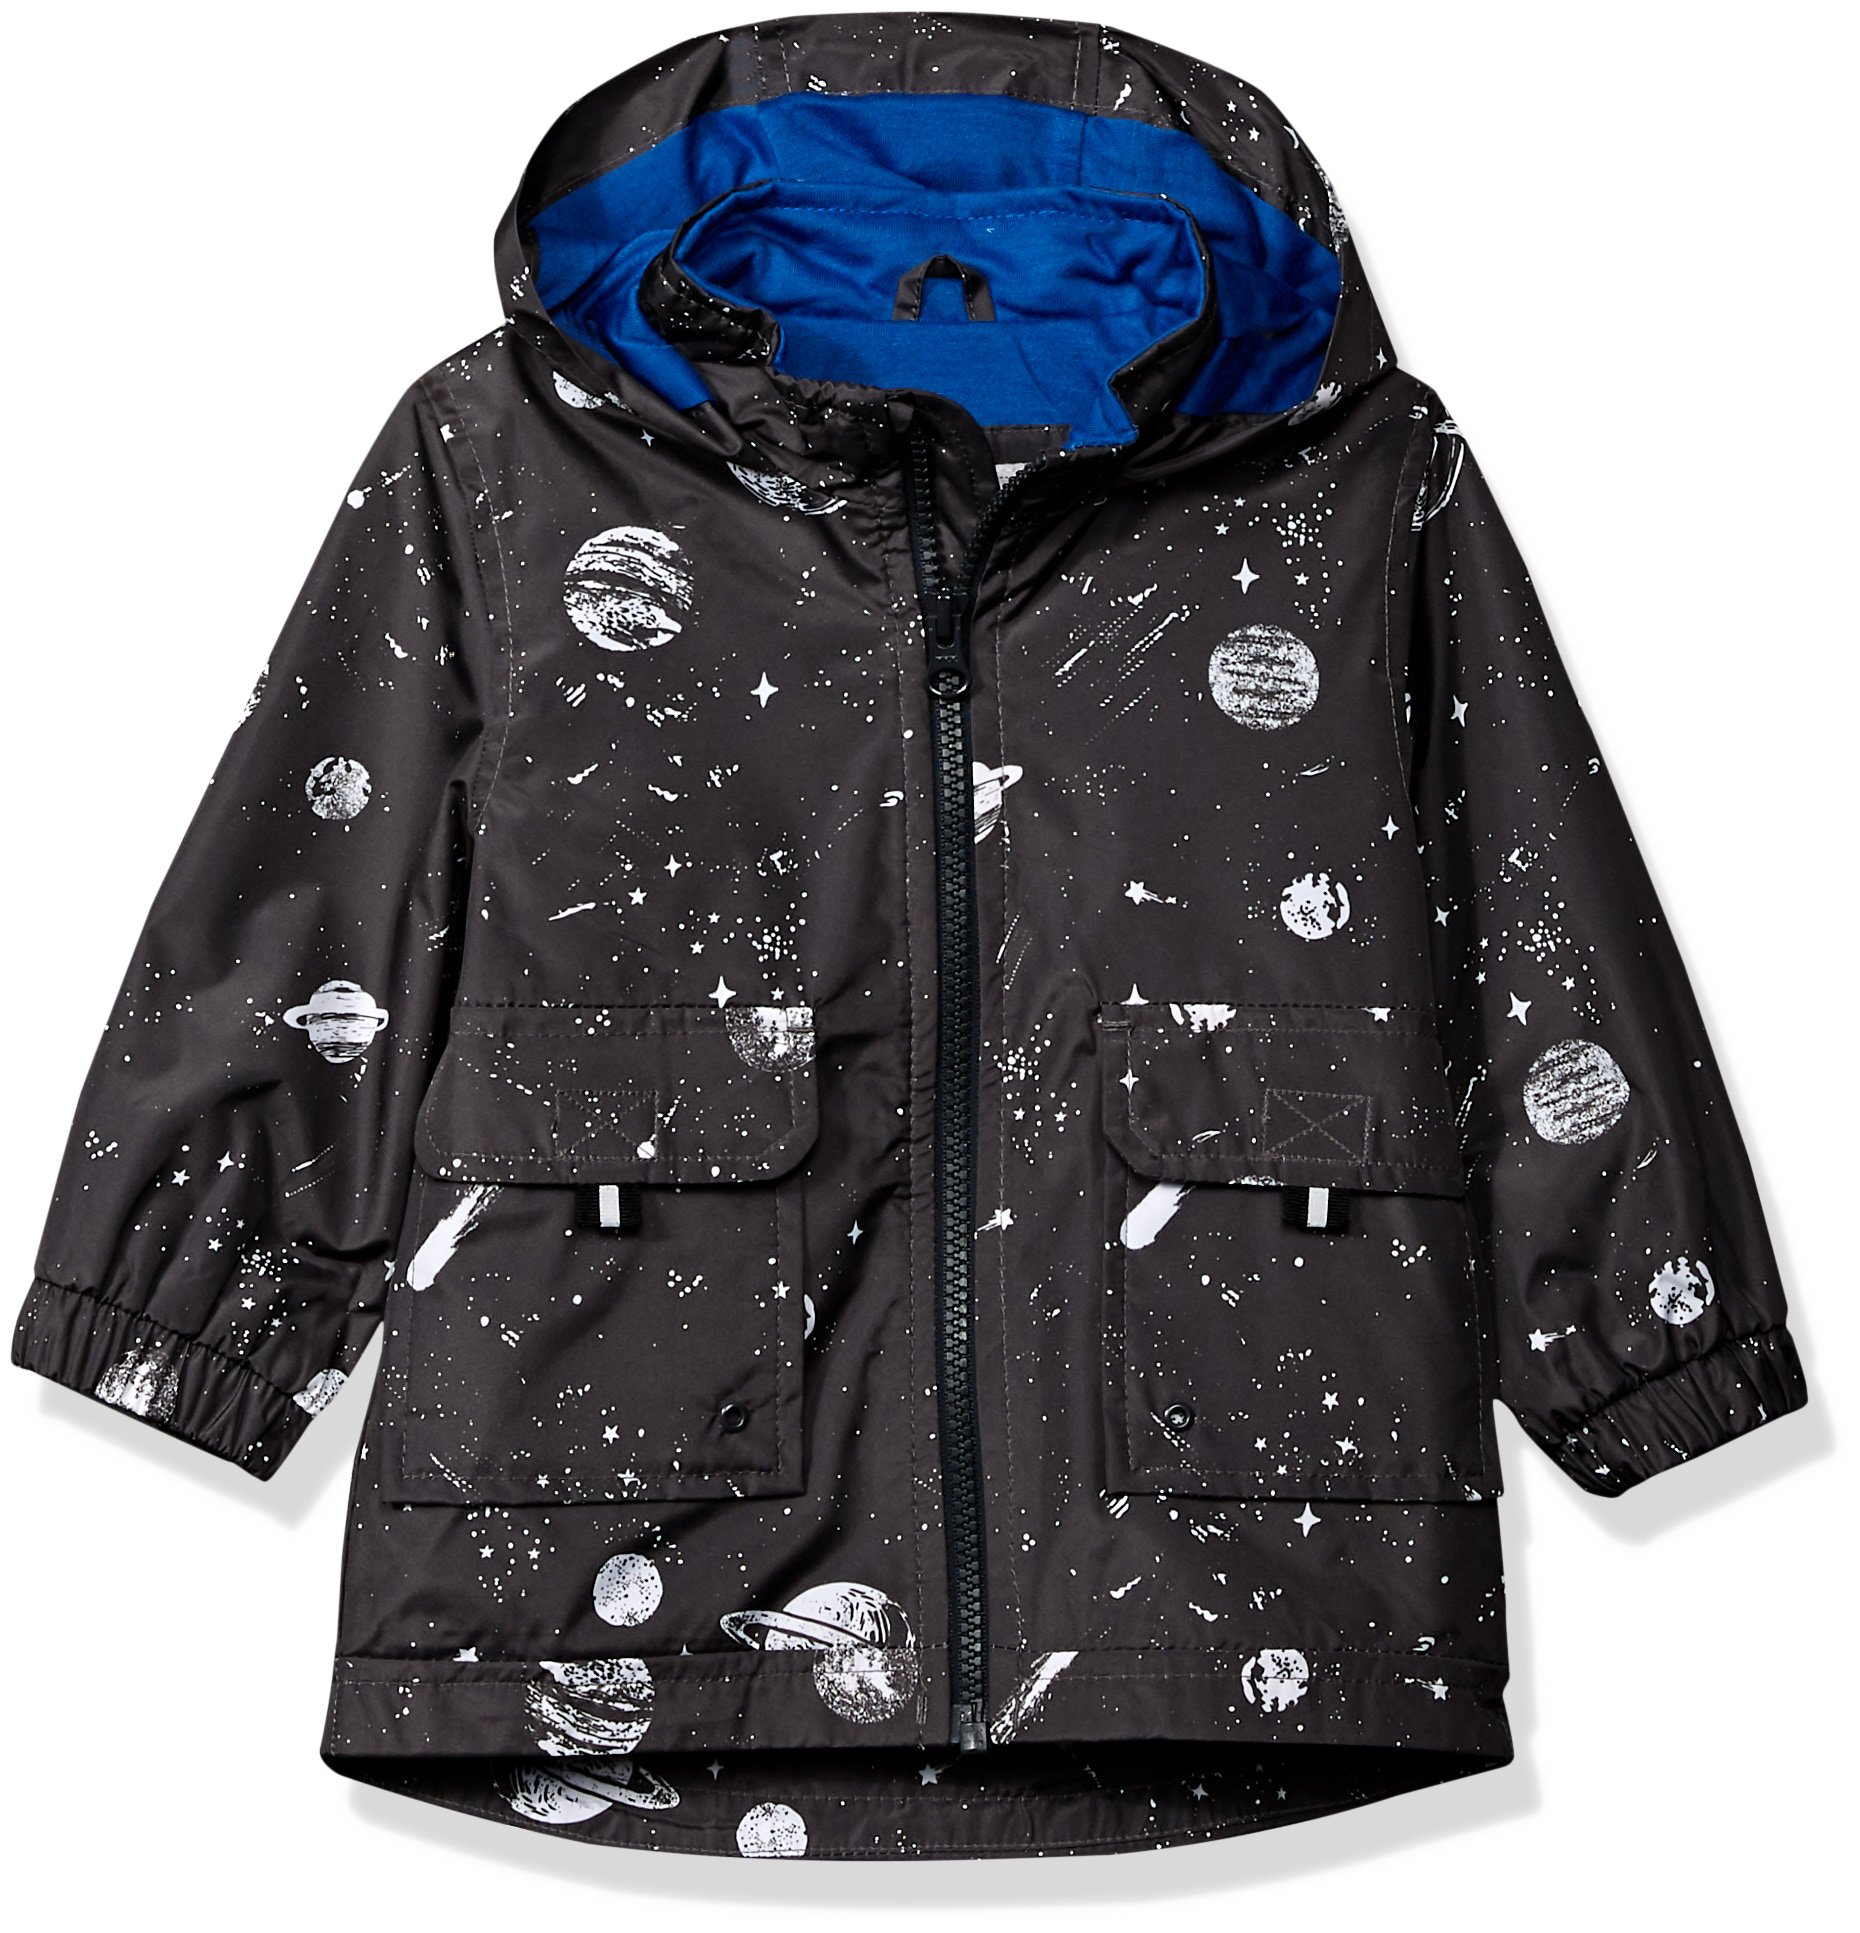 Carter's Baby Boys His Favorite Rainslicker Rain Jacket, Grey Space Print, 18M